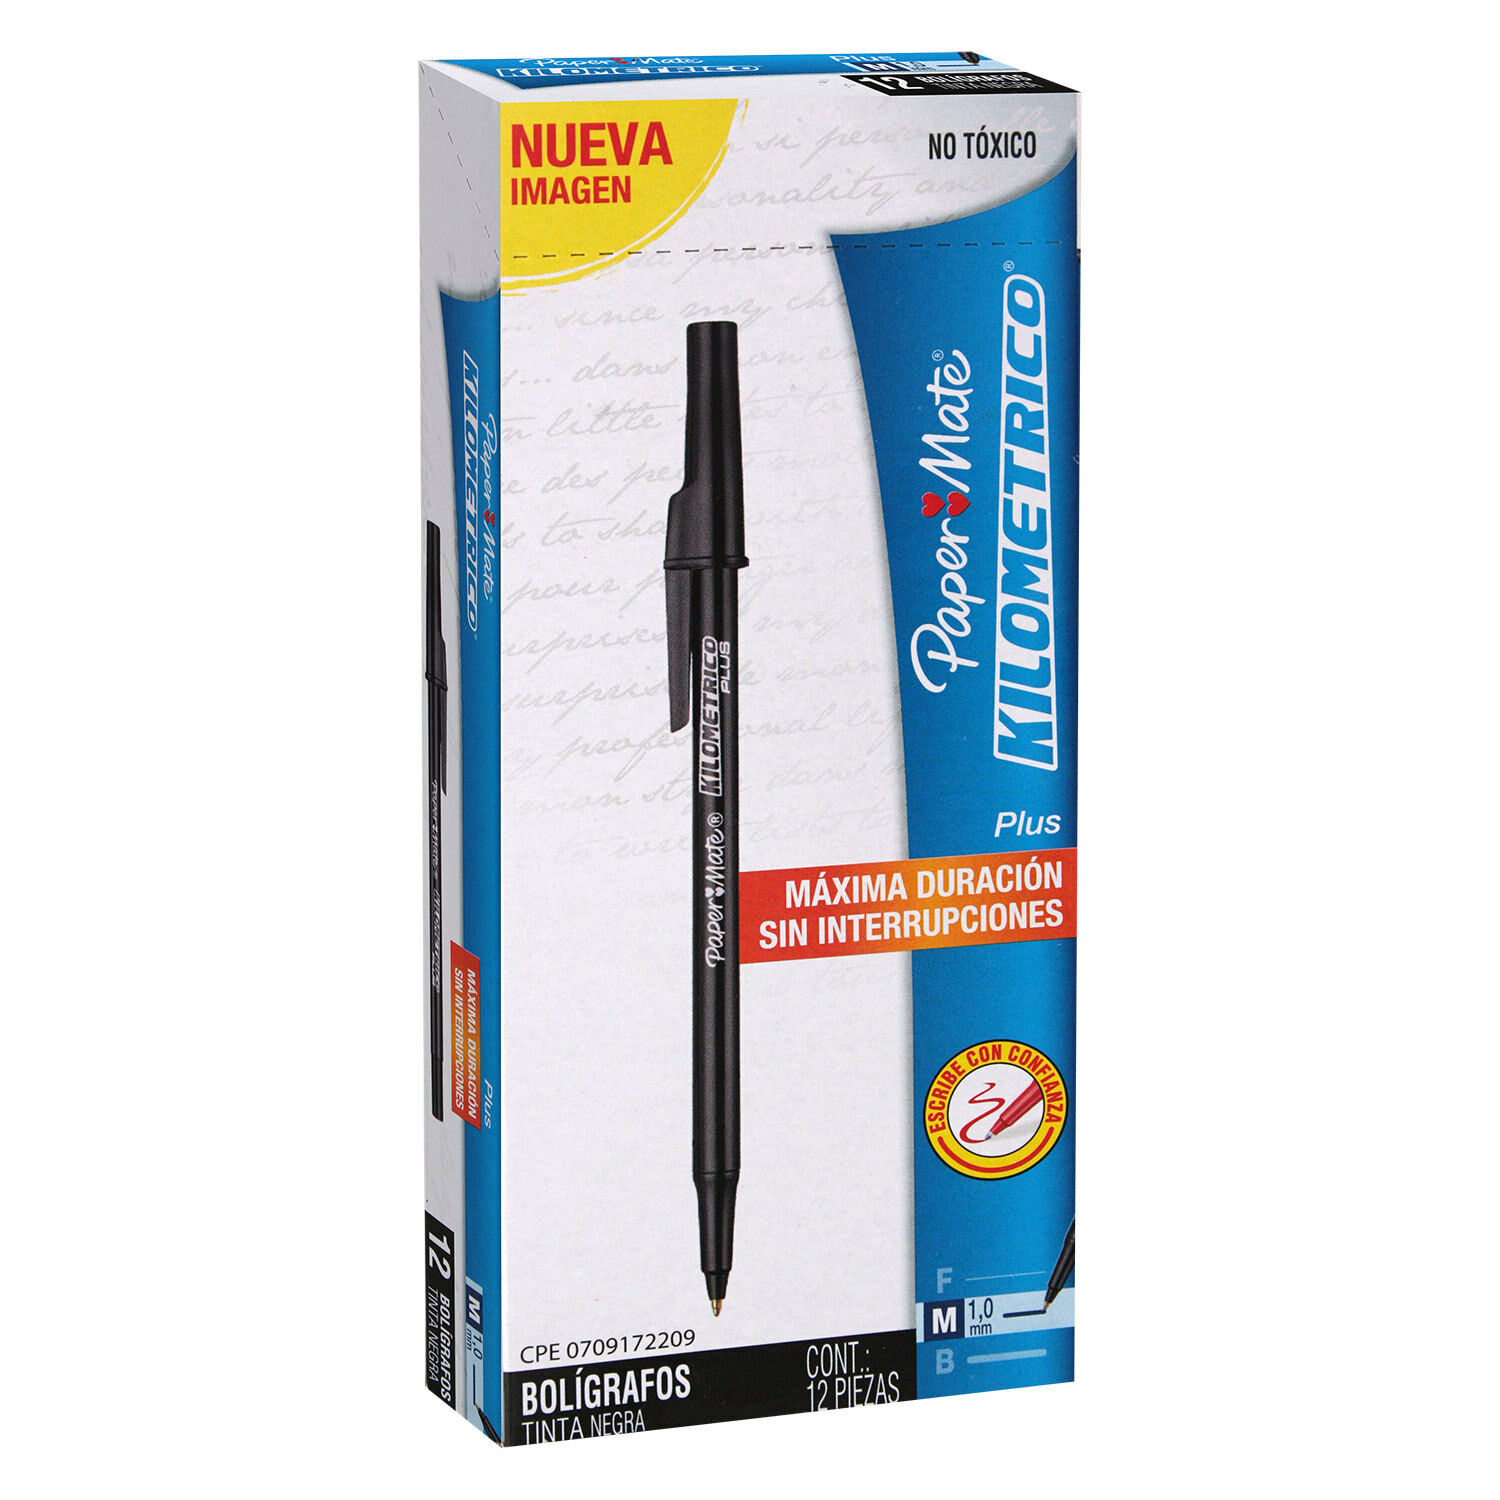 Paper Mate Black Ink 12 Bo Of Pens 144 Kilometrico Office Supplies Best Offer